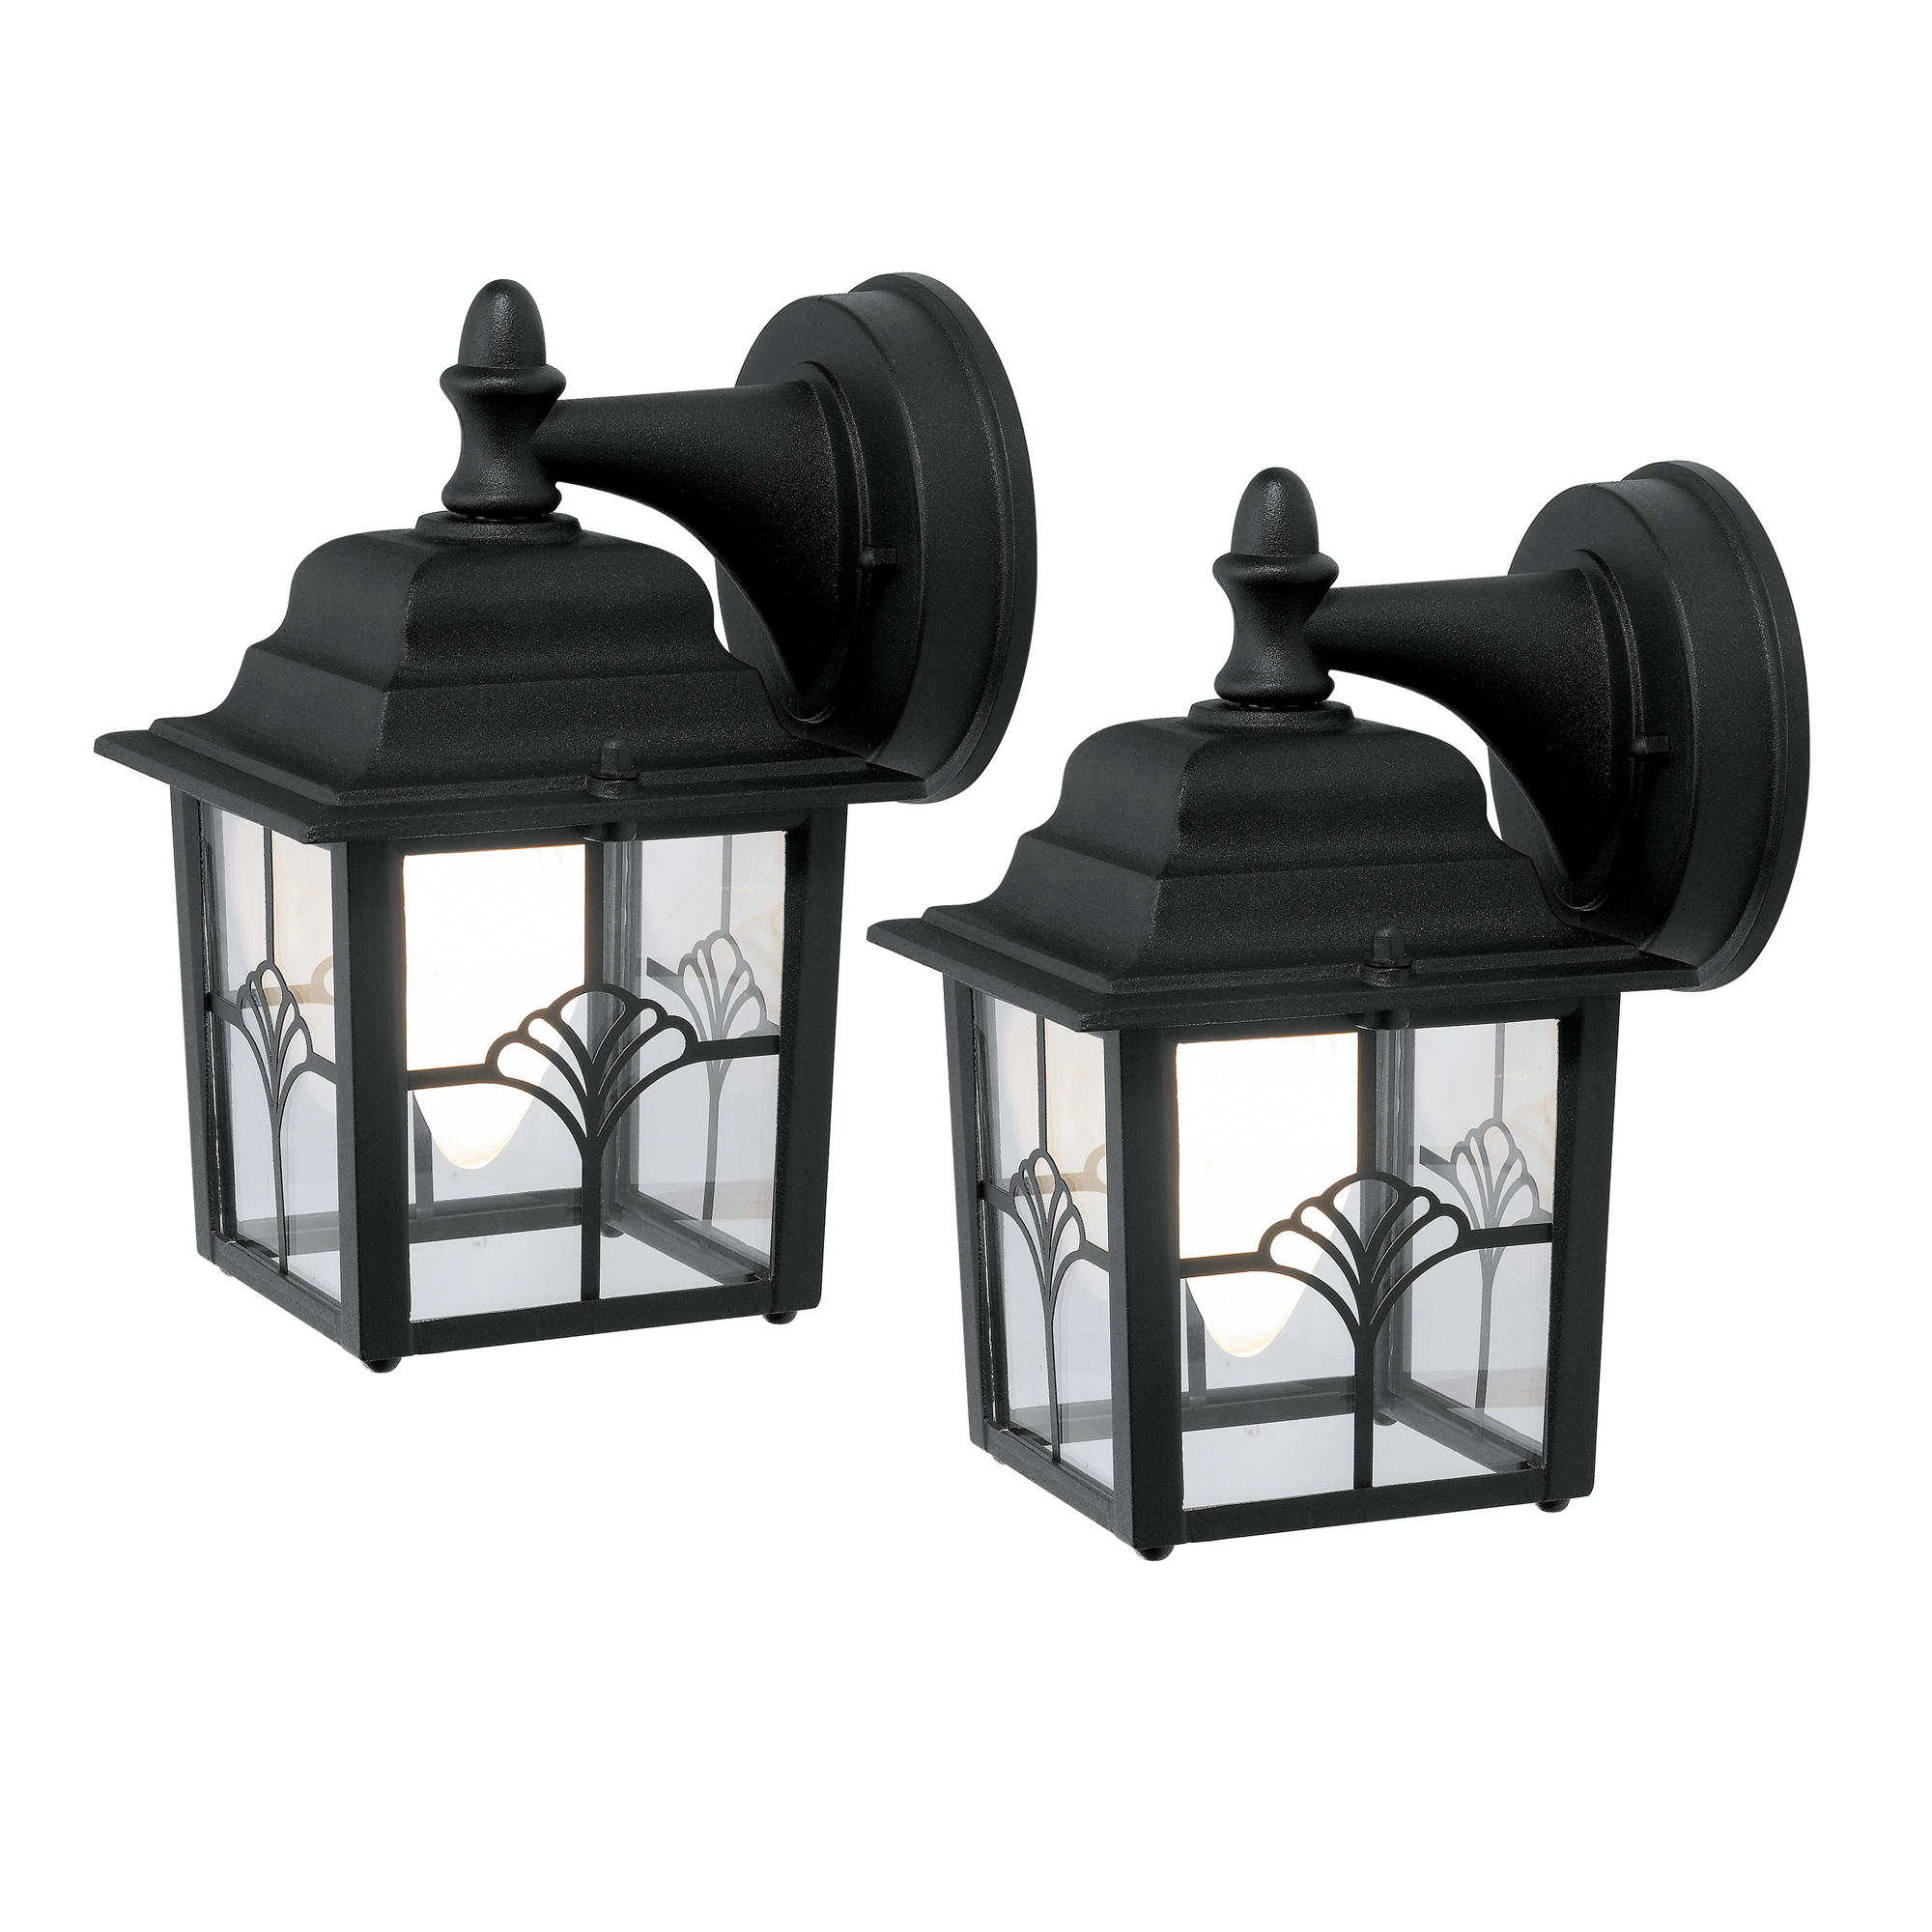 Chapter Decorative Coach Light W Led Bulb 2 Pack Black Finish Walmart Com Walmart Com